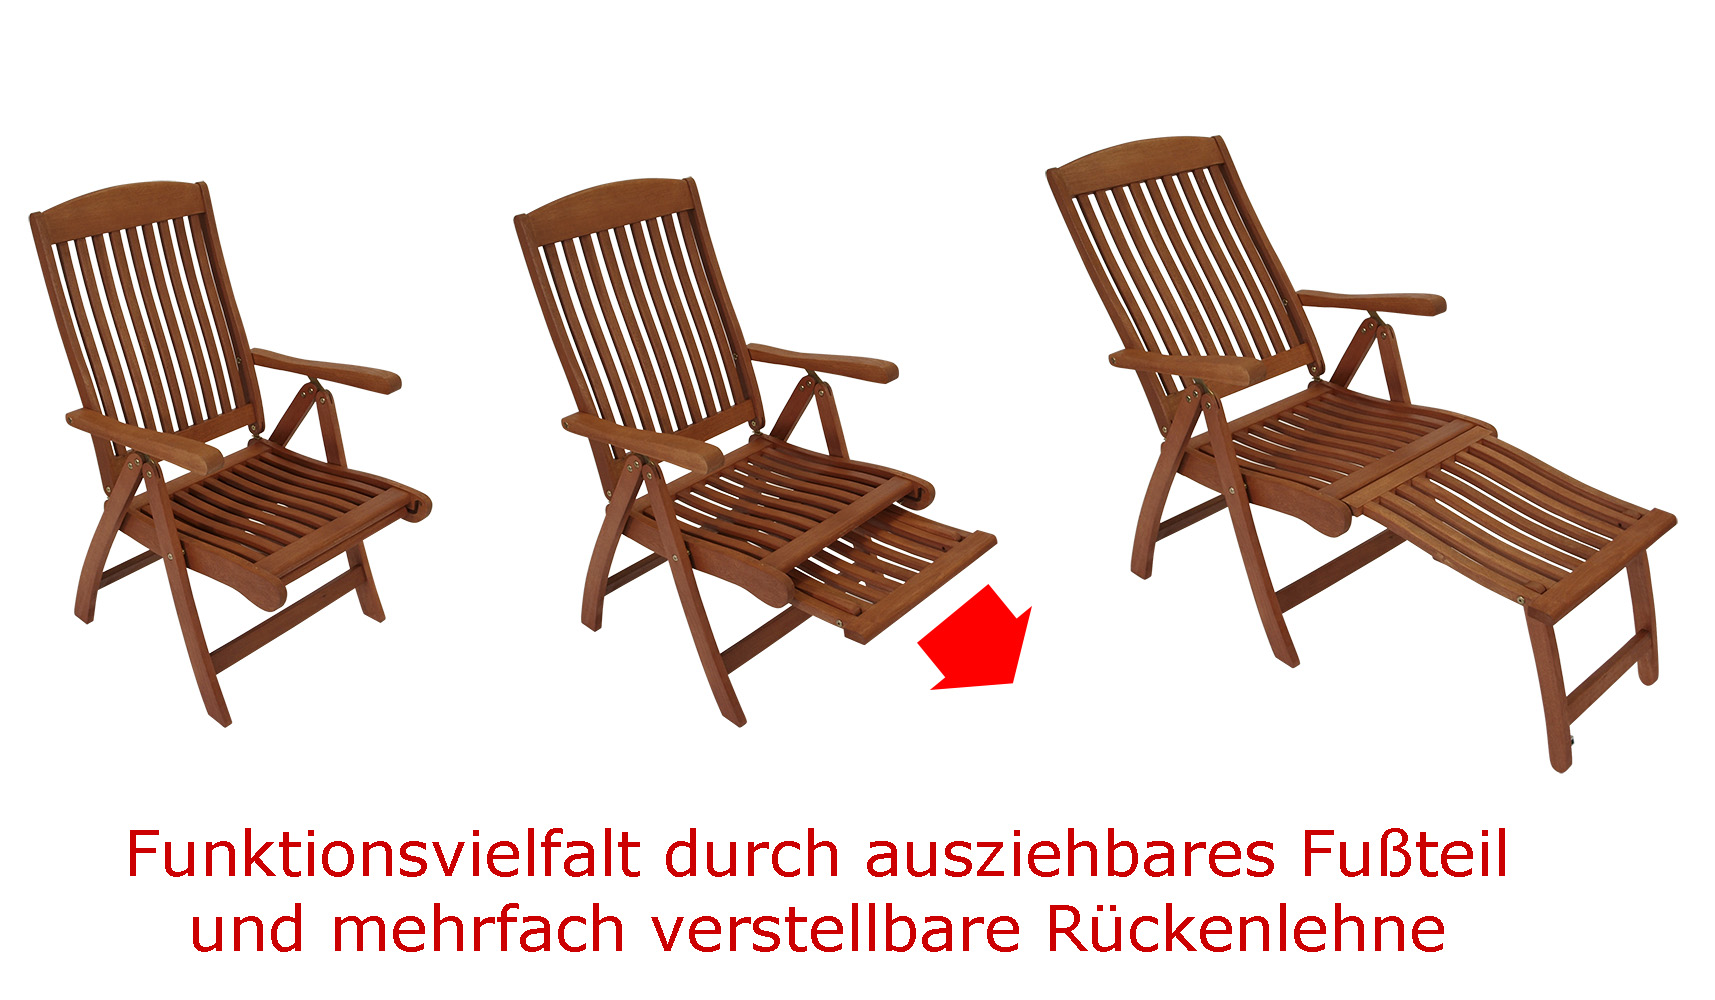 funktions klappsessel mit fussteil deckchair maracaibo eukalyptus fsc zert ebay. Black Bedroom Furniture Sets. Home Design Ideas